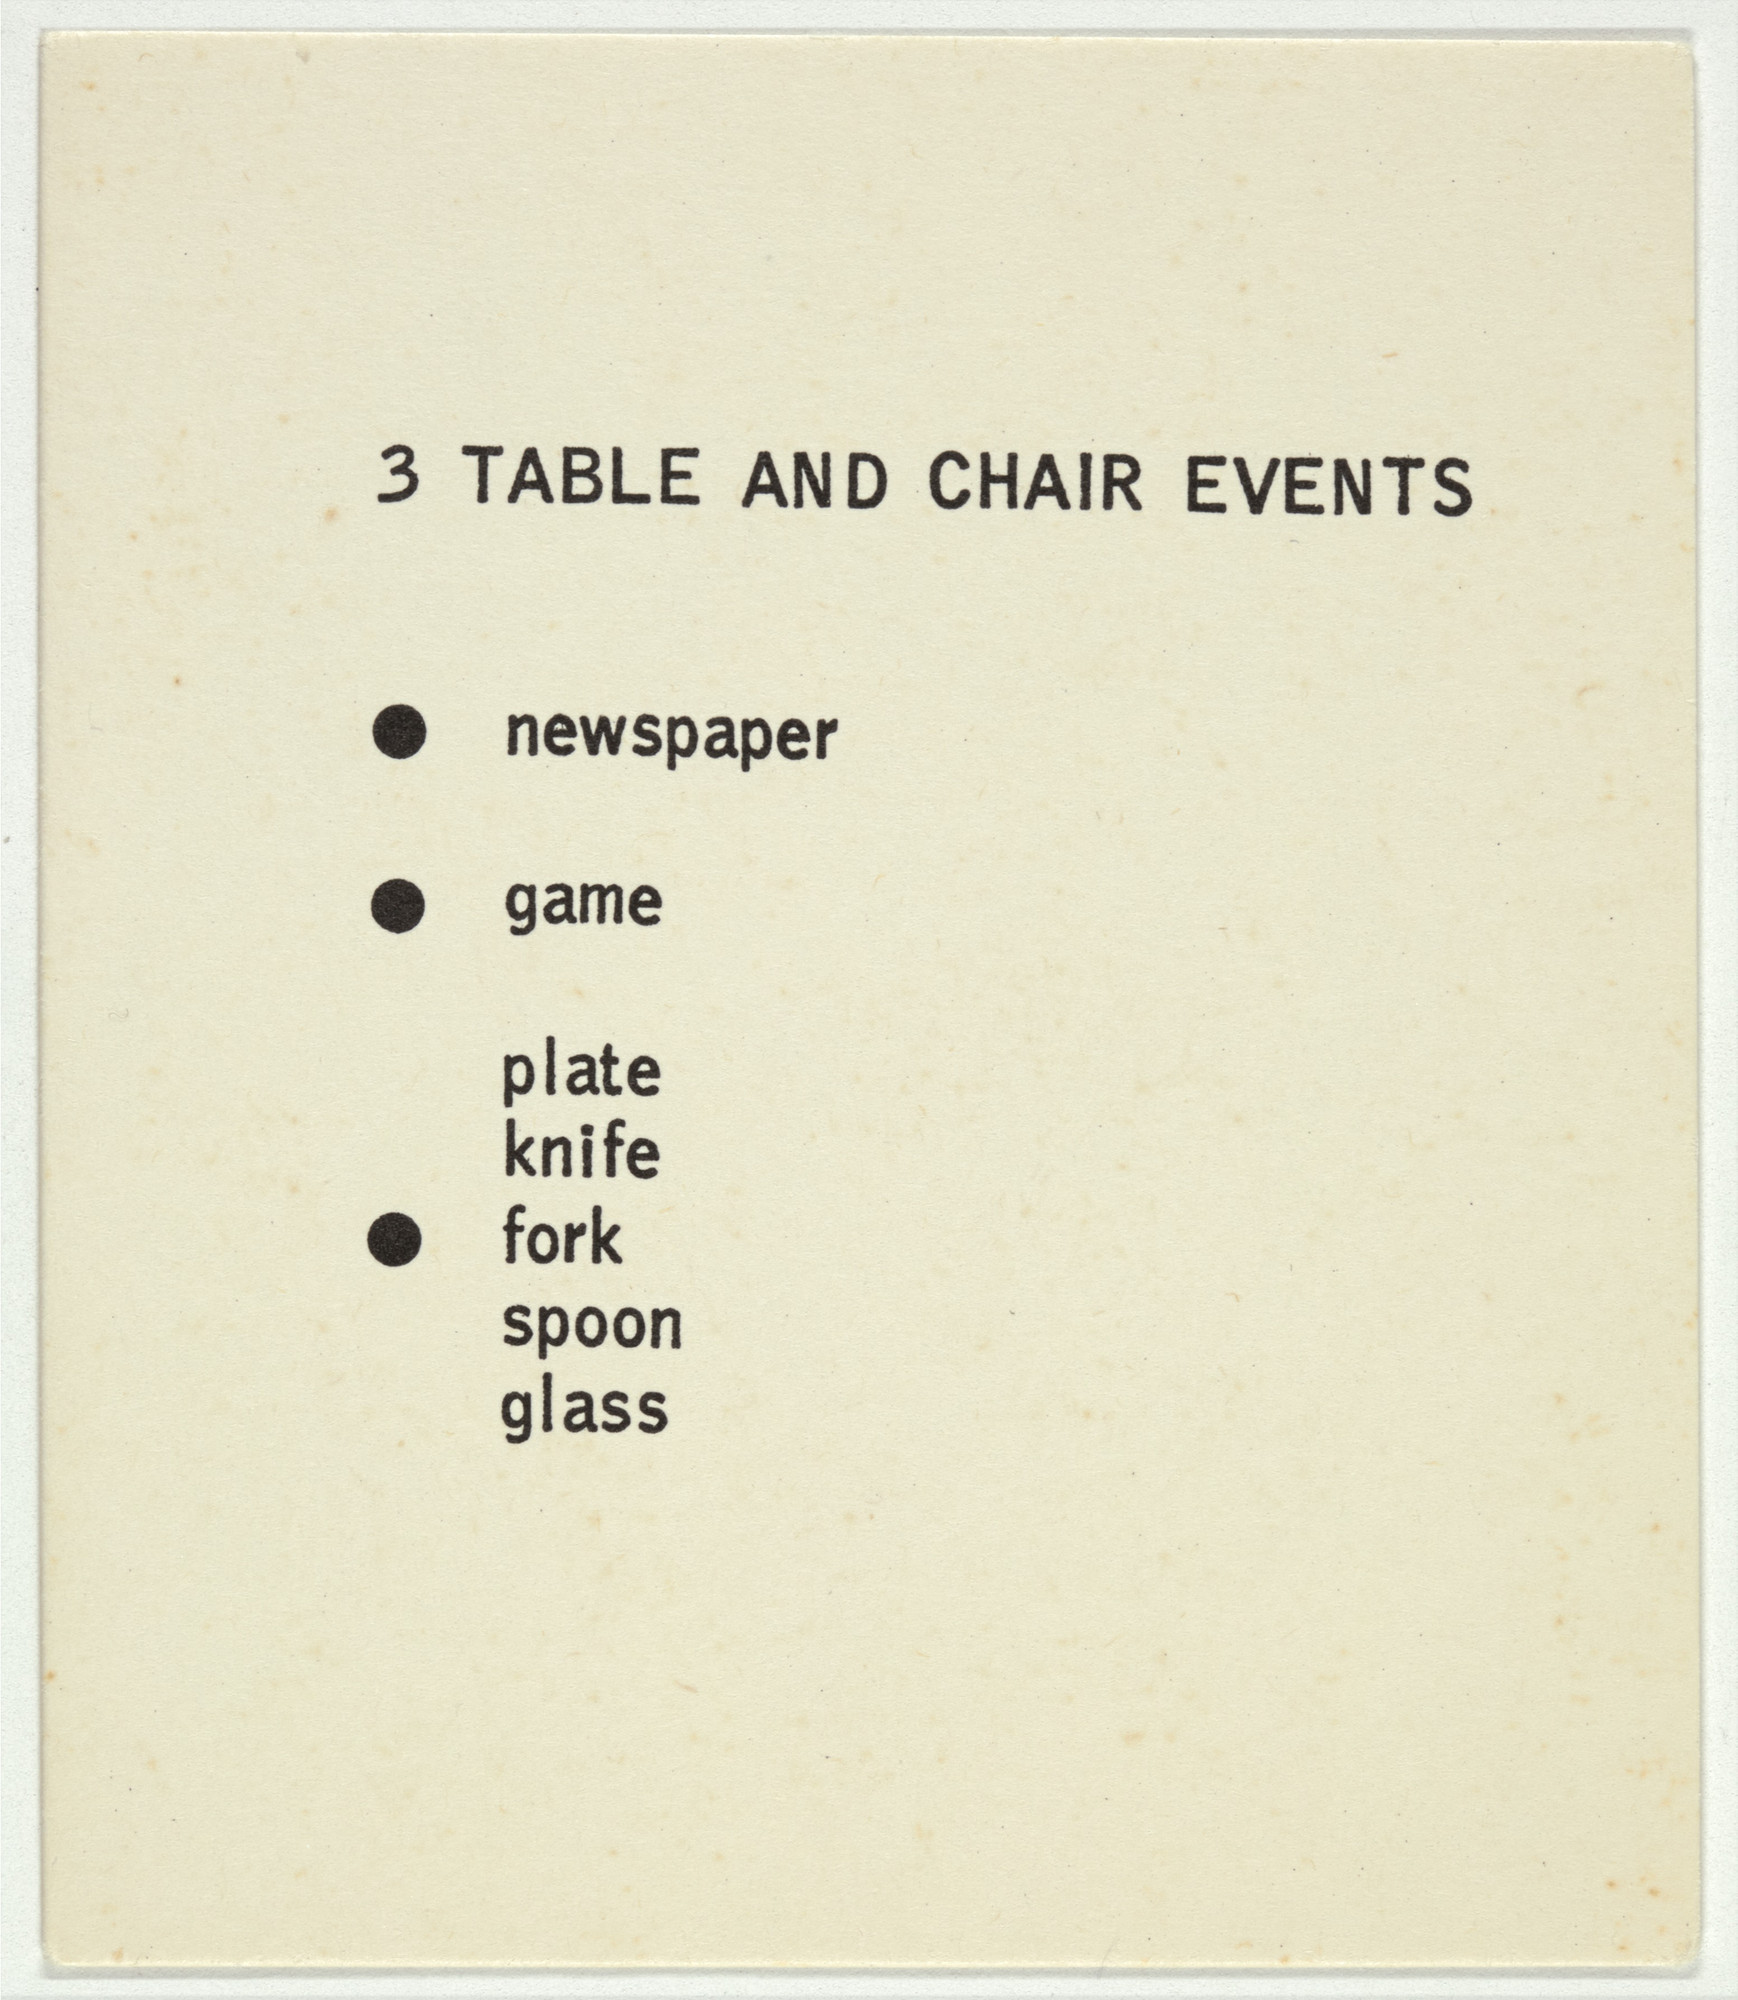 George Brecht. 3 Table and Chair Events from Water Yam. 1963